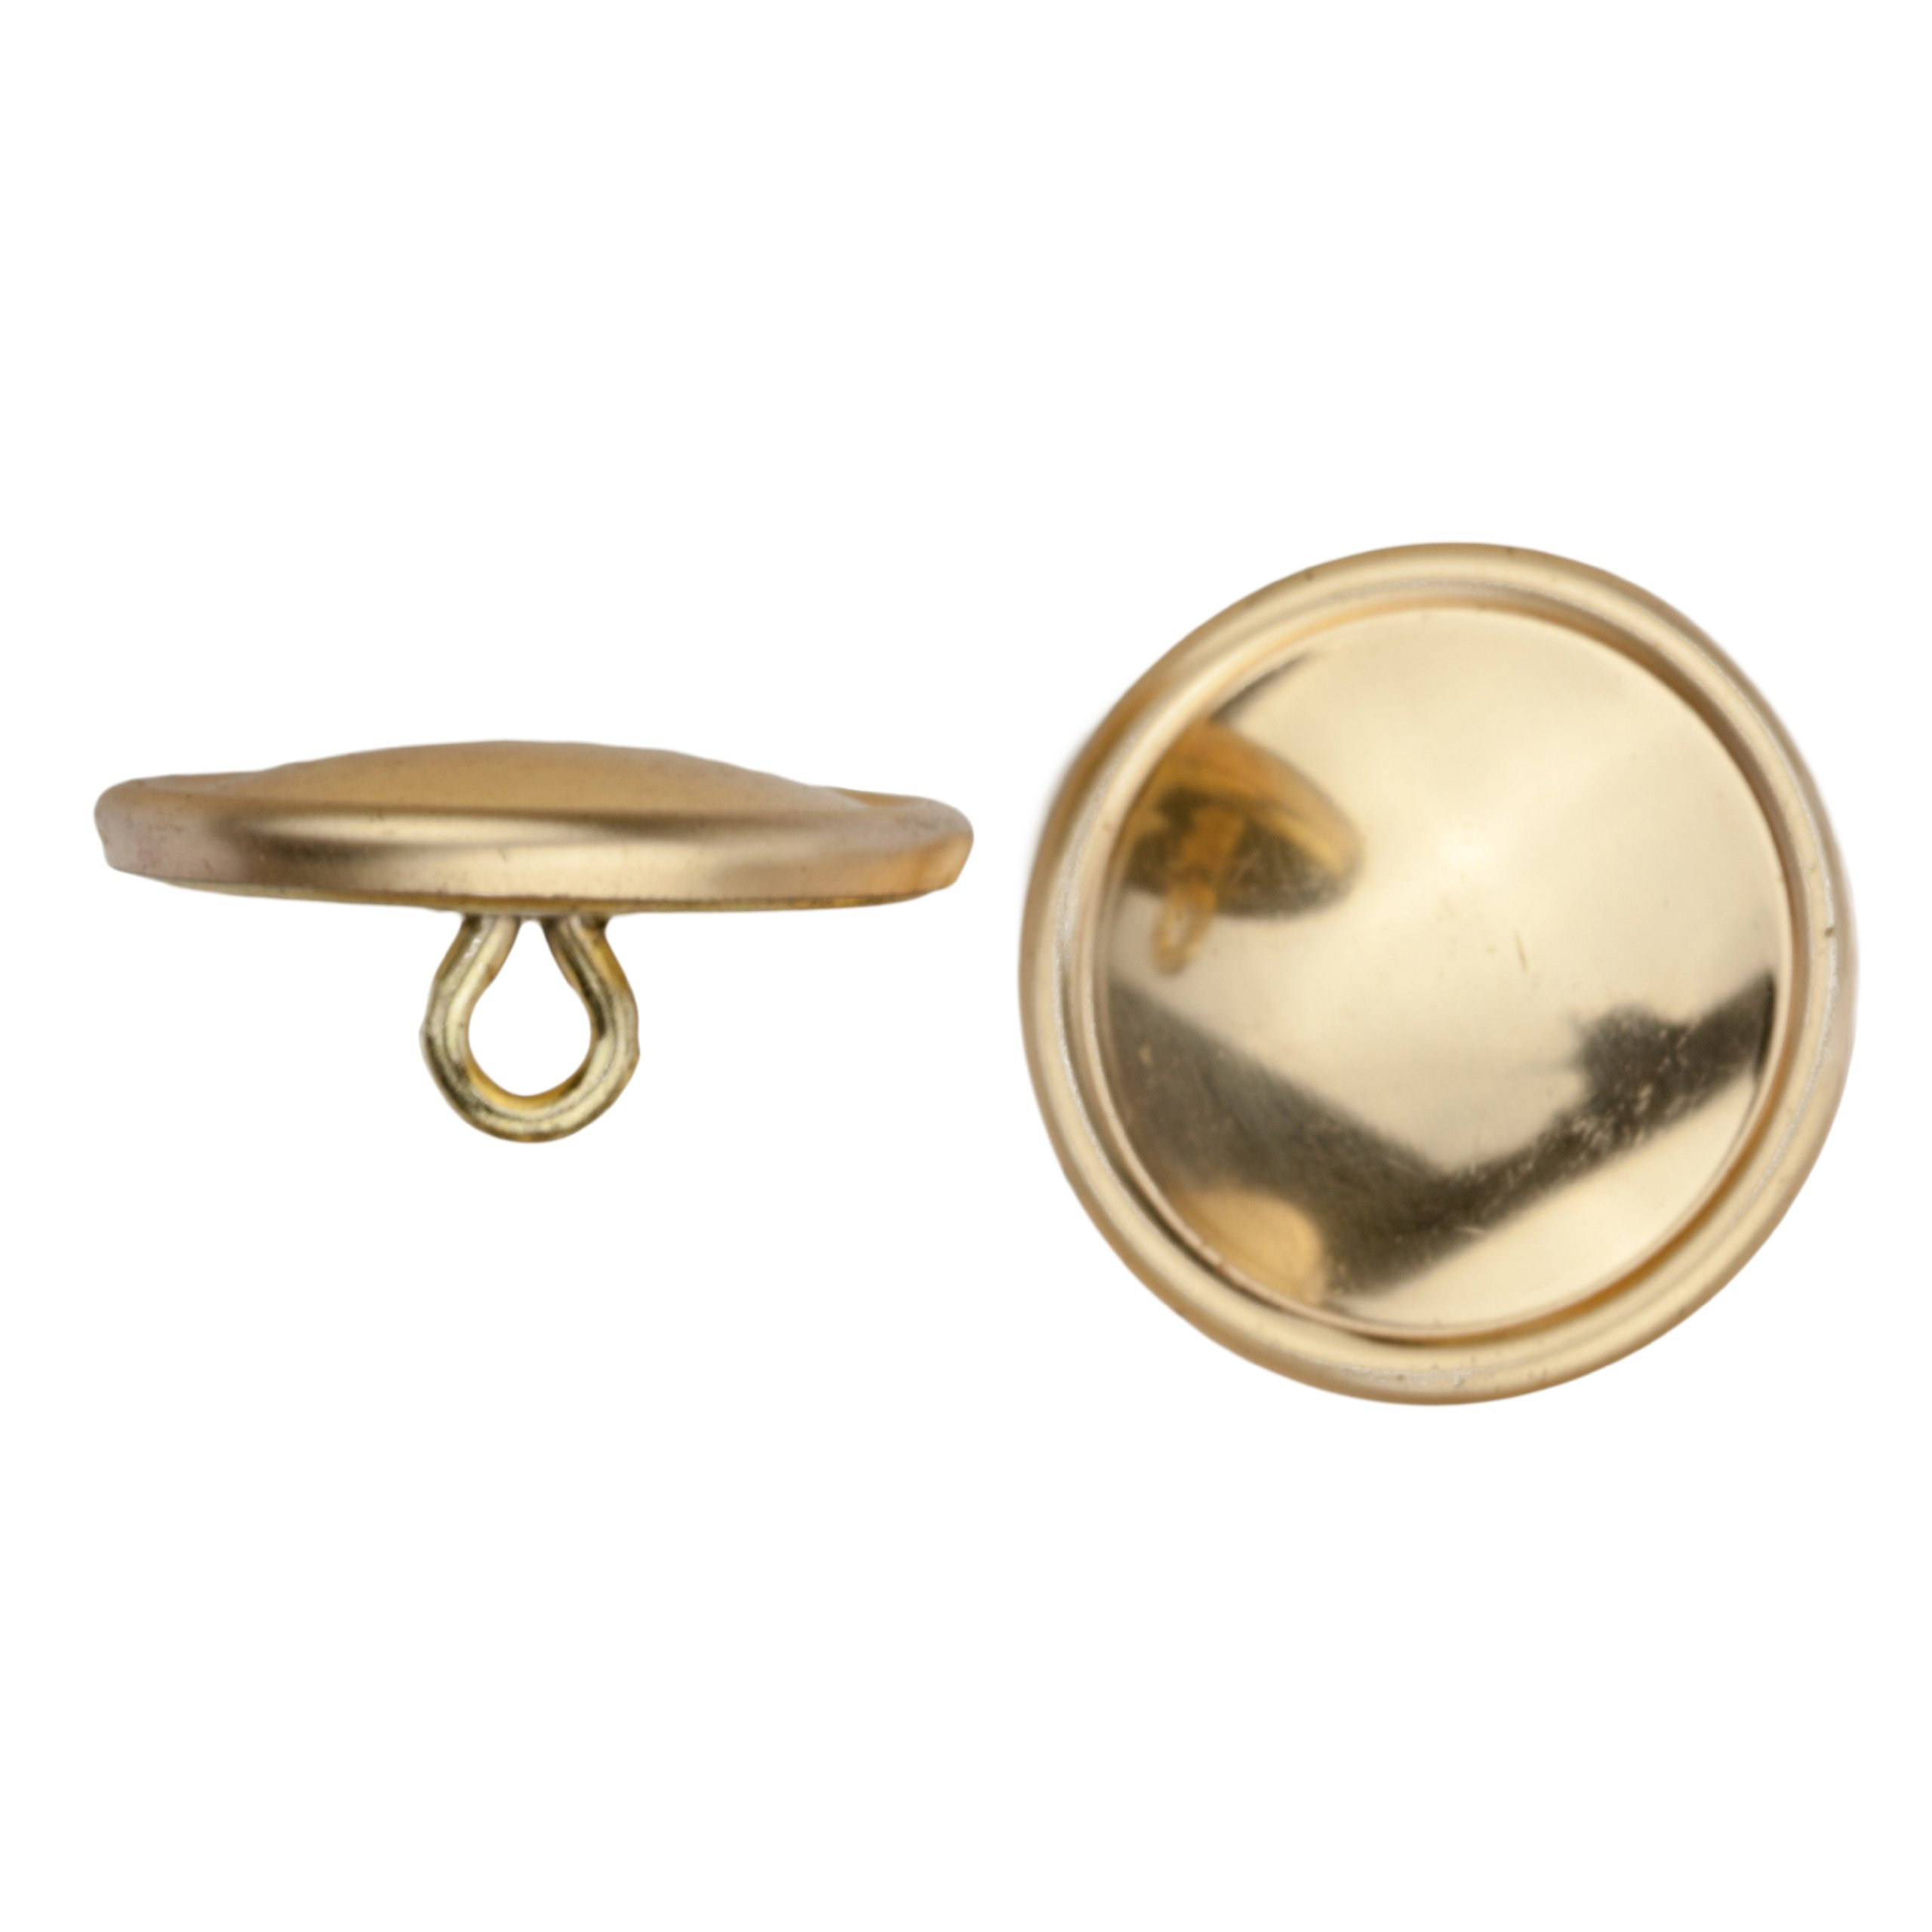 C&C Metal Products Corp 5008 Rimmed Metal Button, Size 36, Polished Gold Finish, 36-Piece